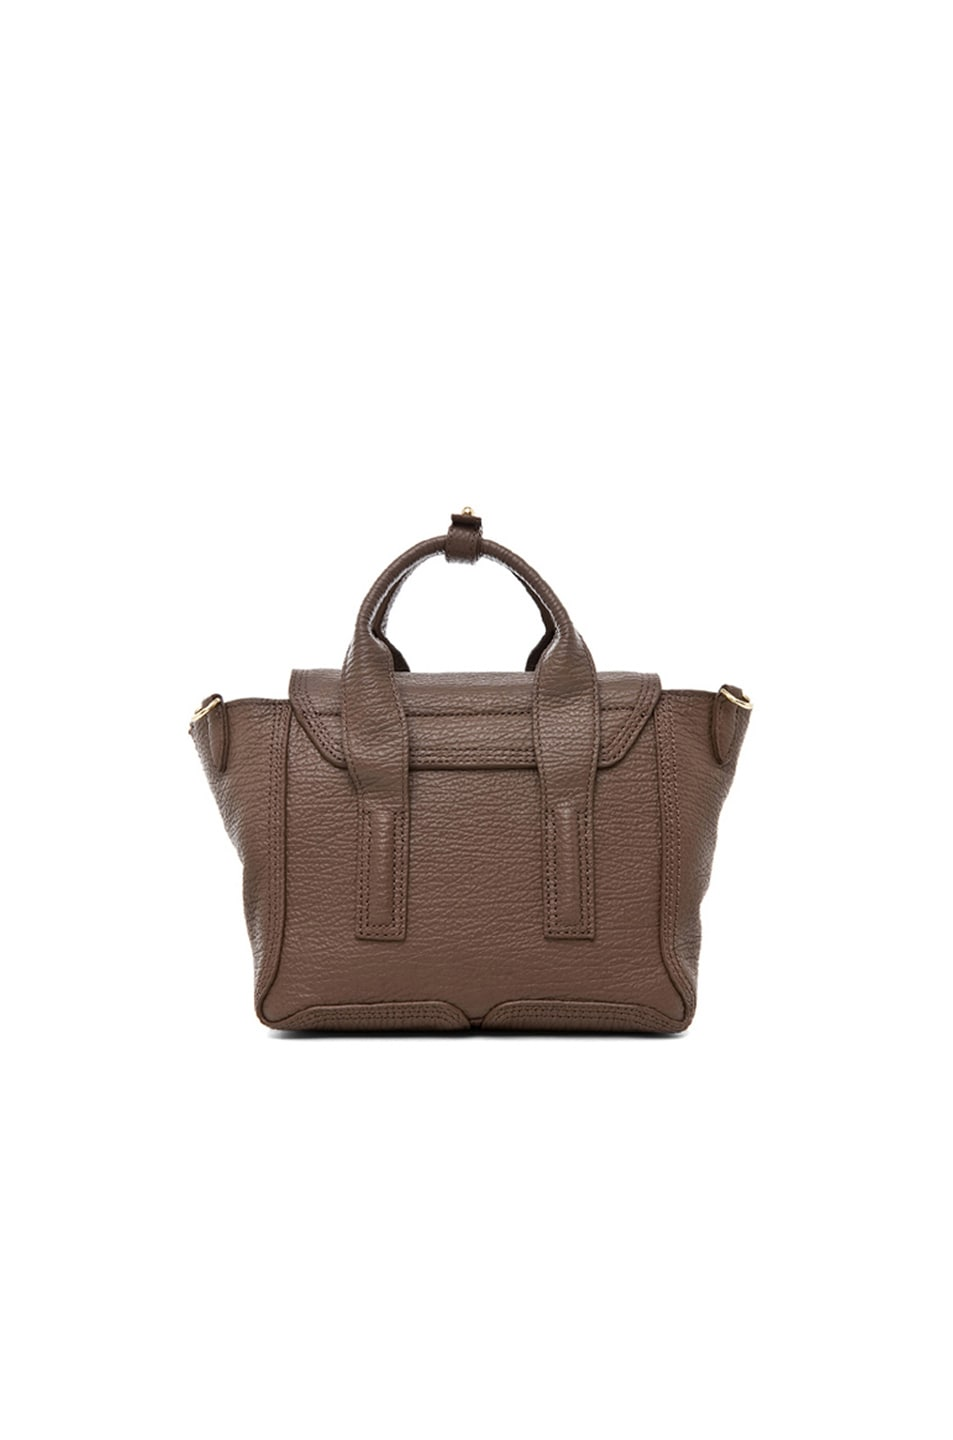 Image 3 of 3.1 phillip lim Mini Pashli Satchel in Taupe